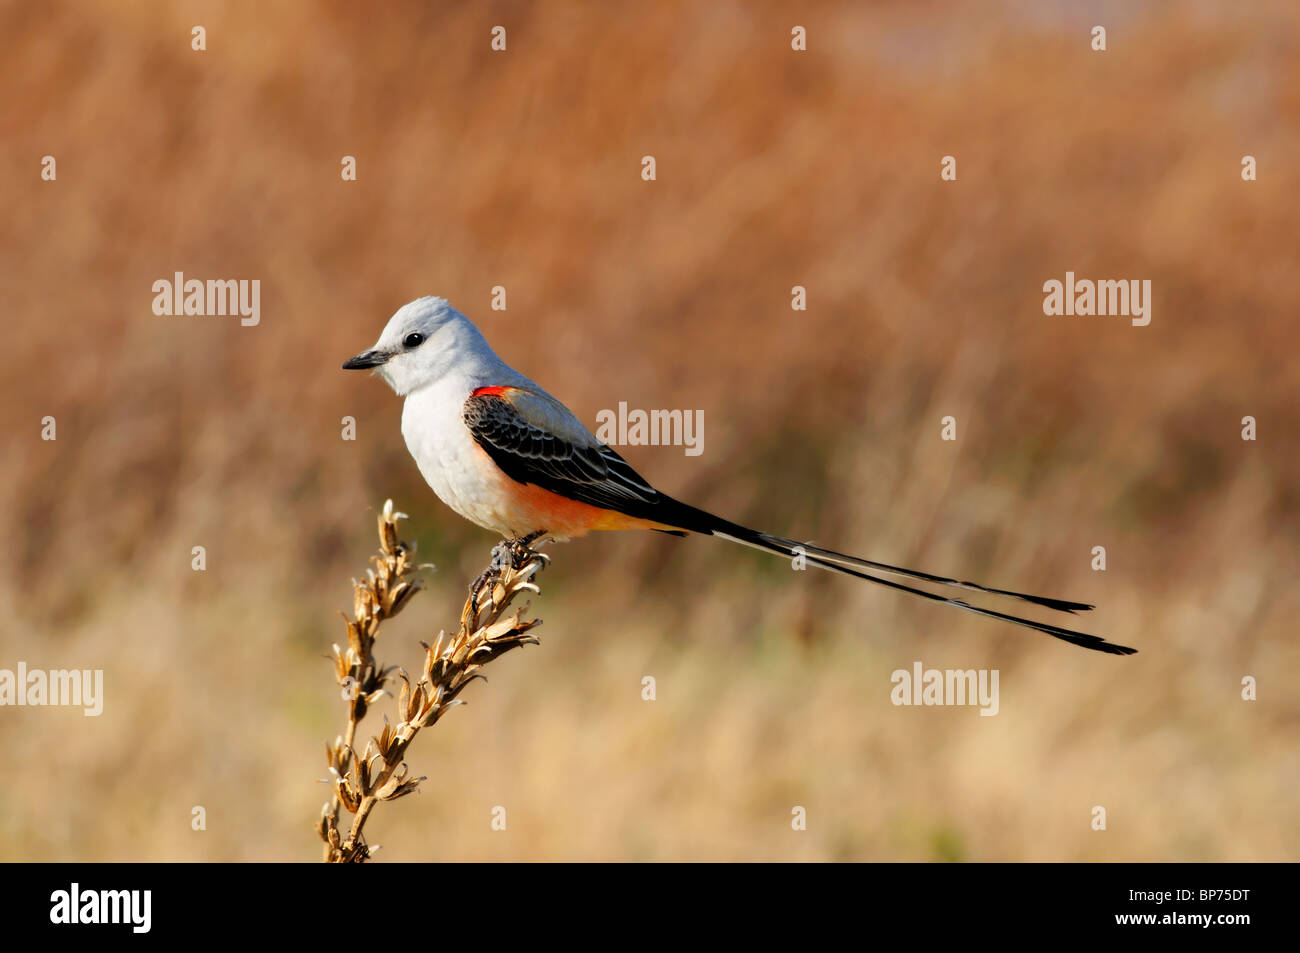 a-scissor-tailed-flycatcher-or-tyrannus-